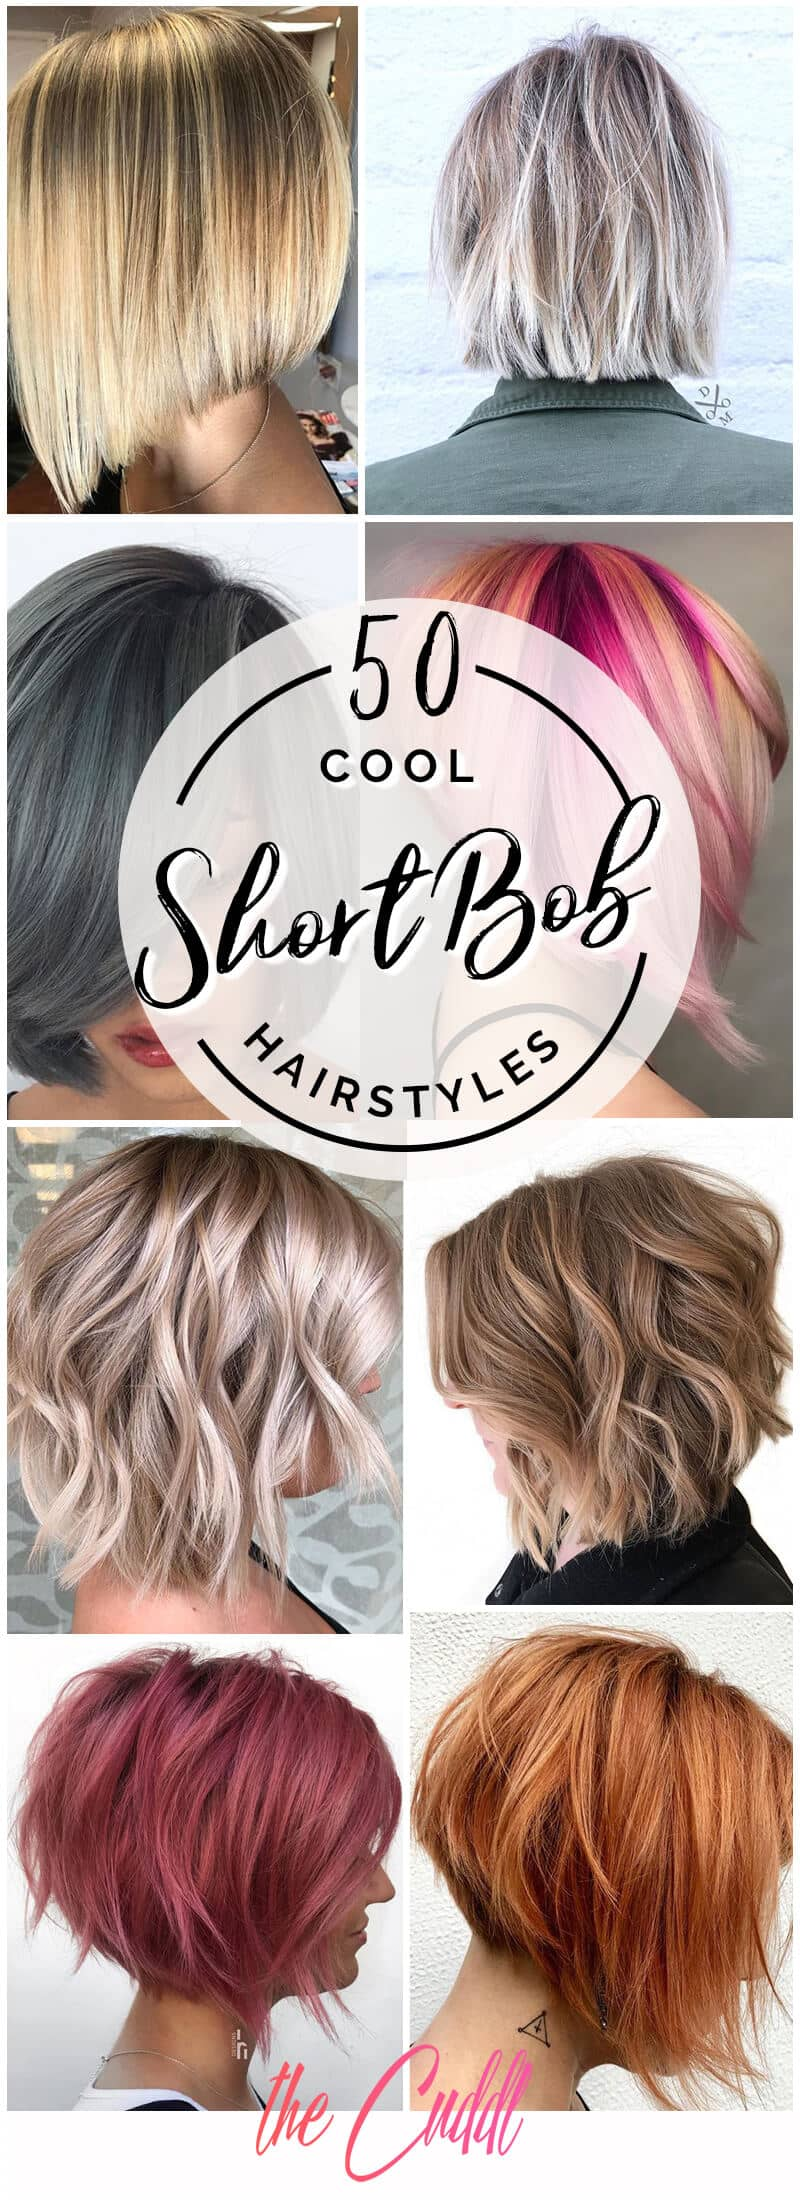 The 50 Most Eye-Catching Short Bob Haircuts That Will Make You Stand Out